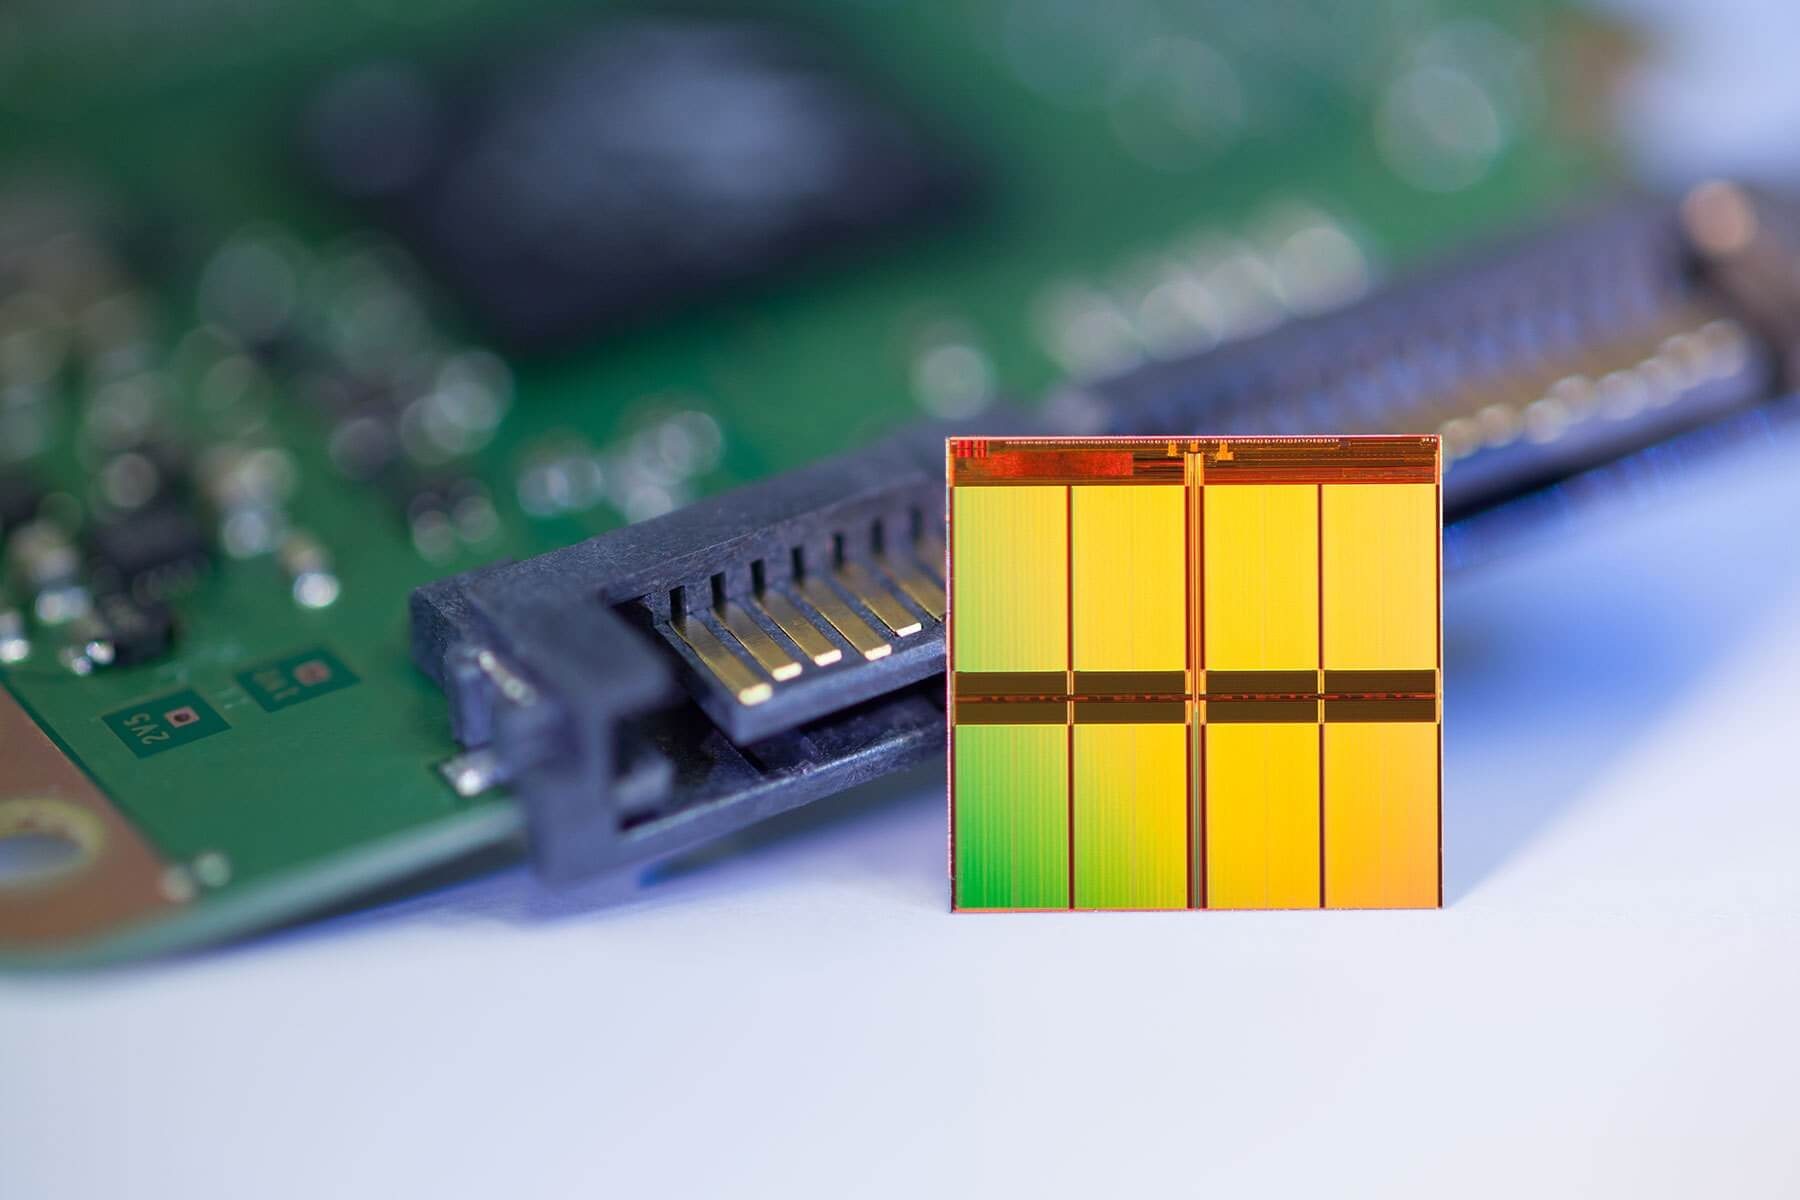 Researchers Discover A Way to Bypass Hardware-Based SSD Full Disk Encryption